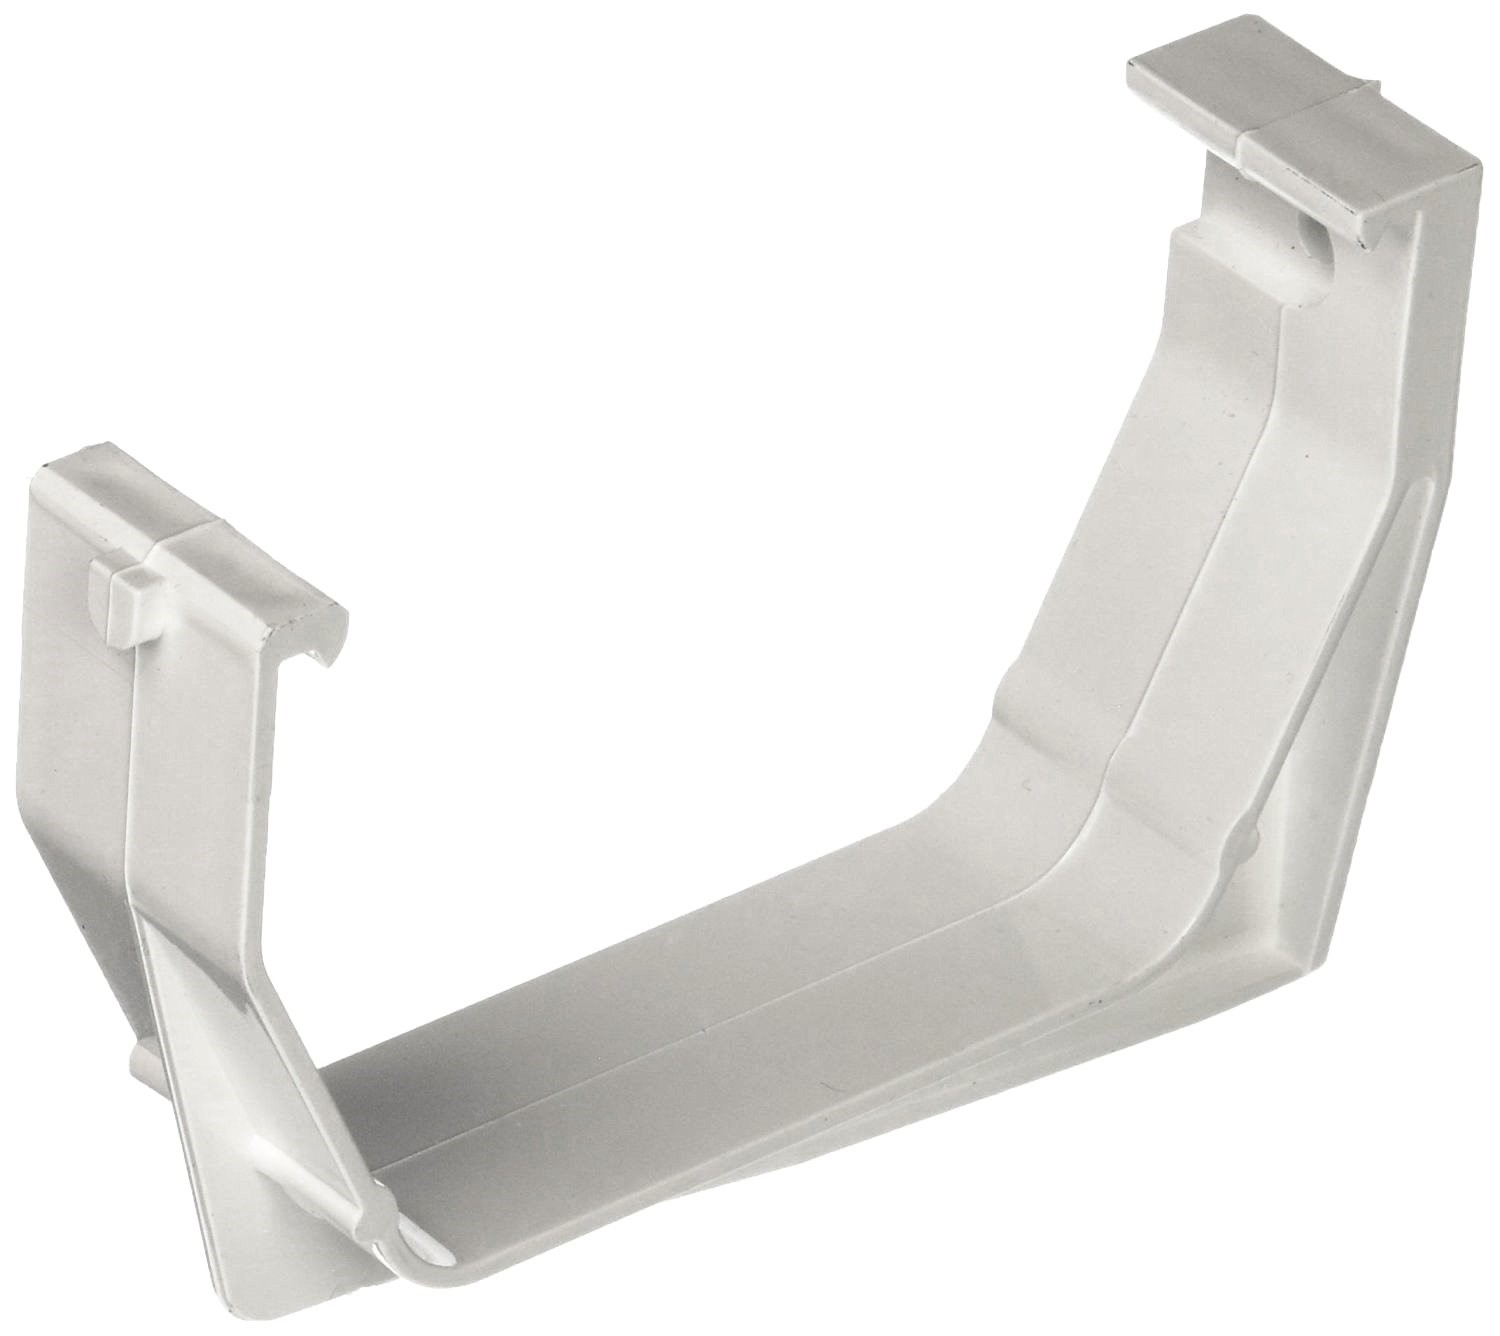 Buy The Genova Prod Rw106h Raingo Pvc Gutter Bracket